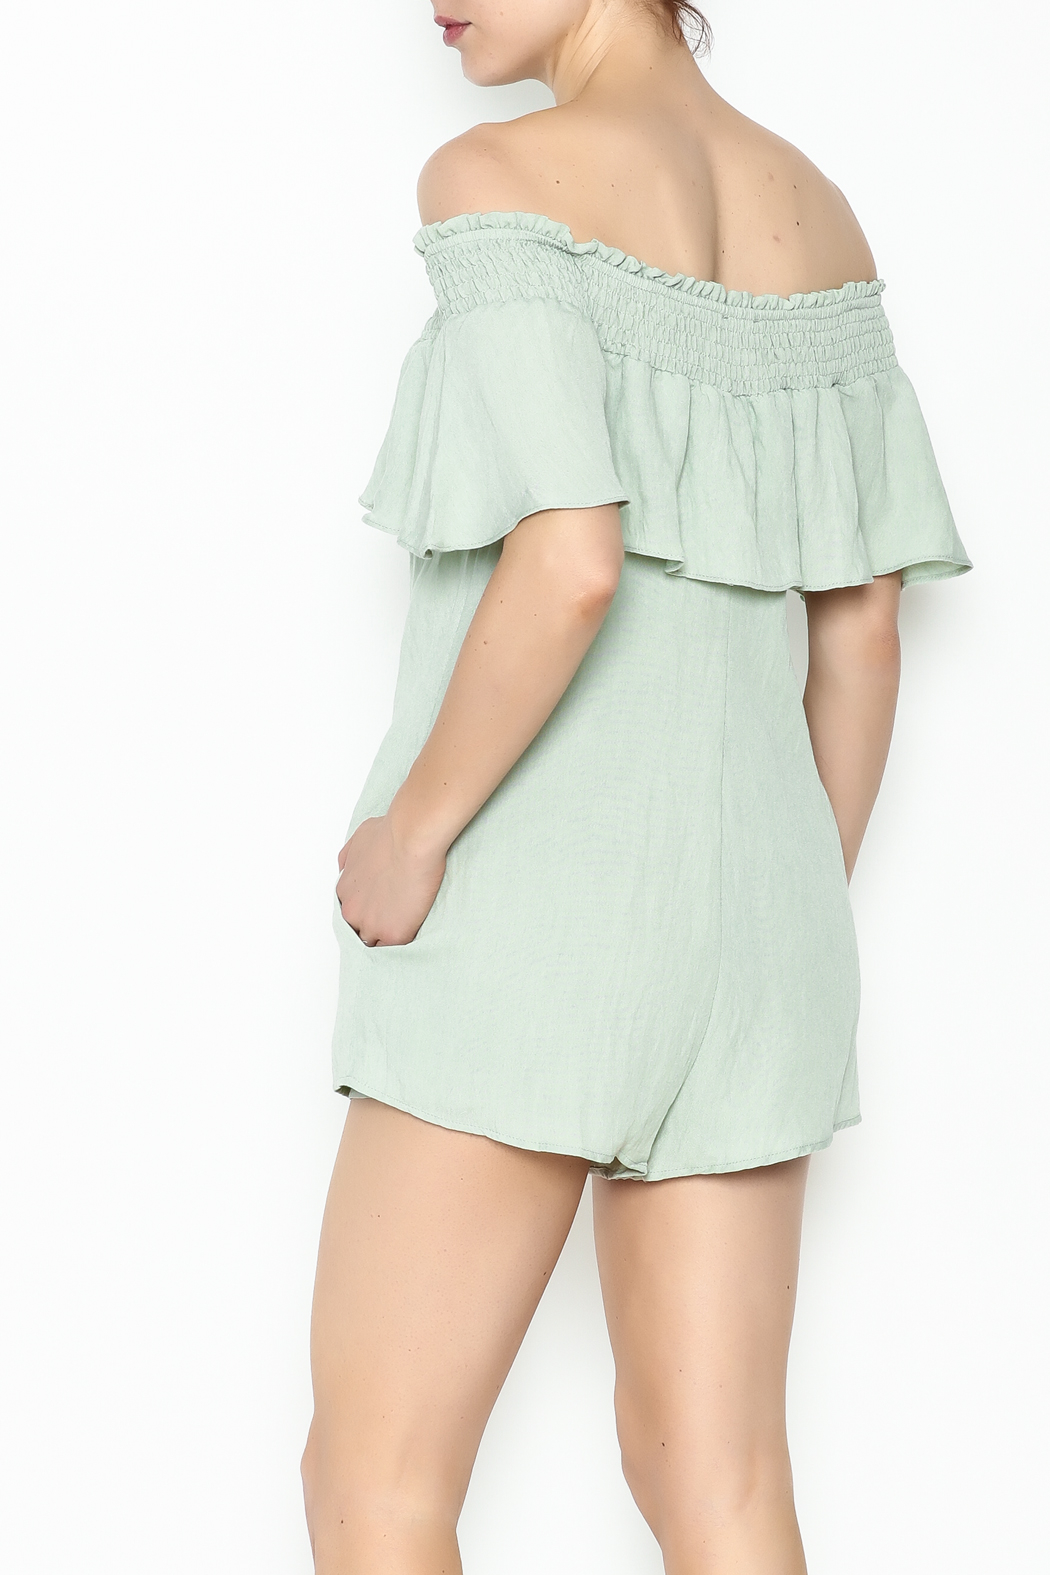 Cotton Candy LA Off The Shoudler Romper - Back Cropped Image